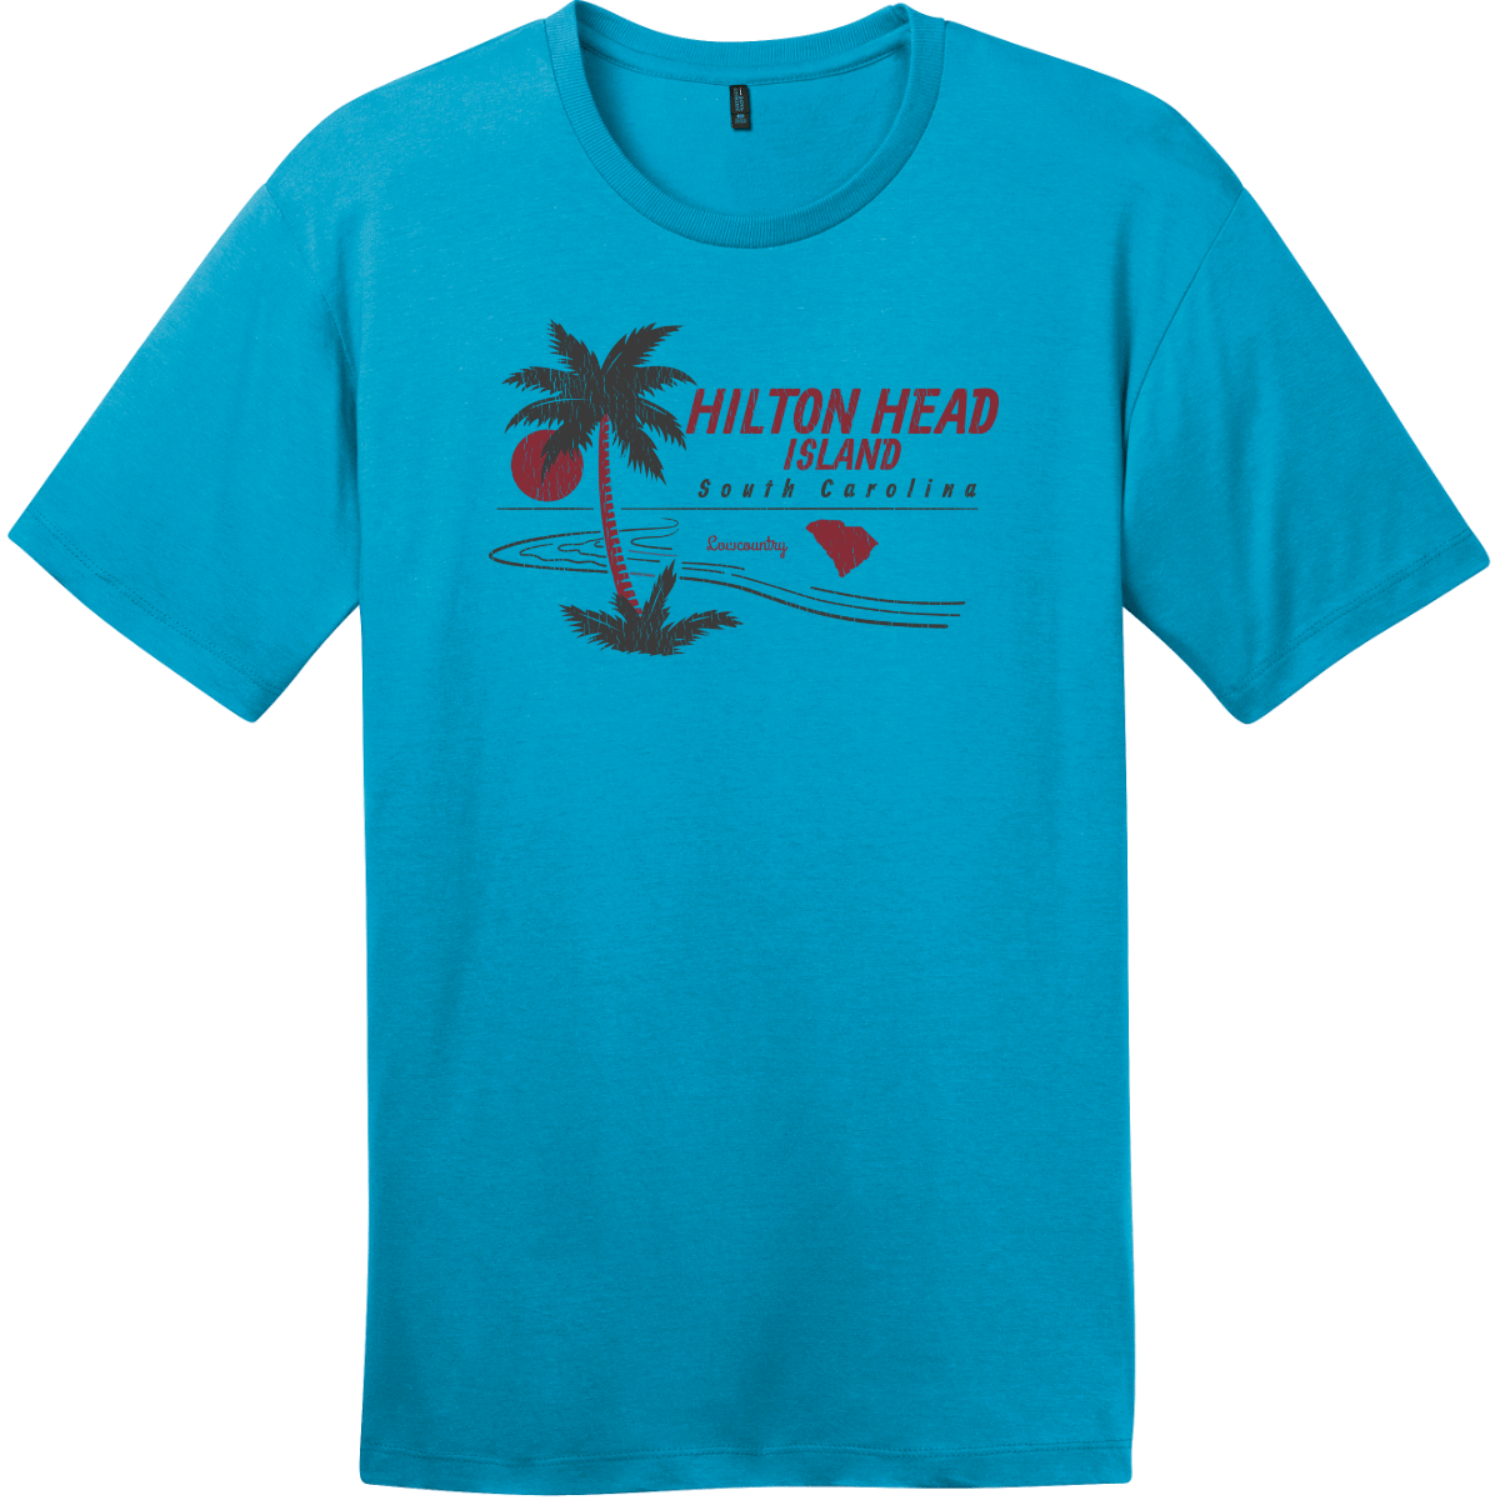 Hilton Head Island Lowcountry T-Shirt Bright Turquoise District Perfect Weight Tee DT104